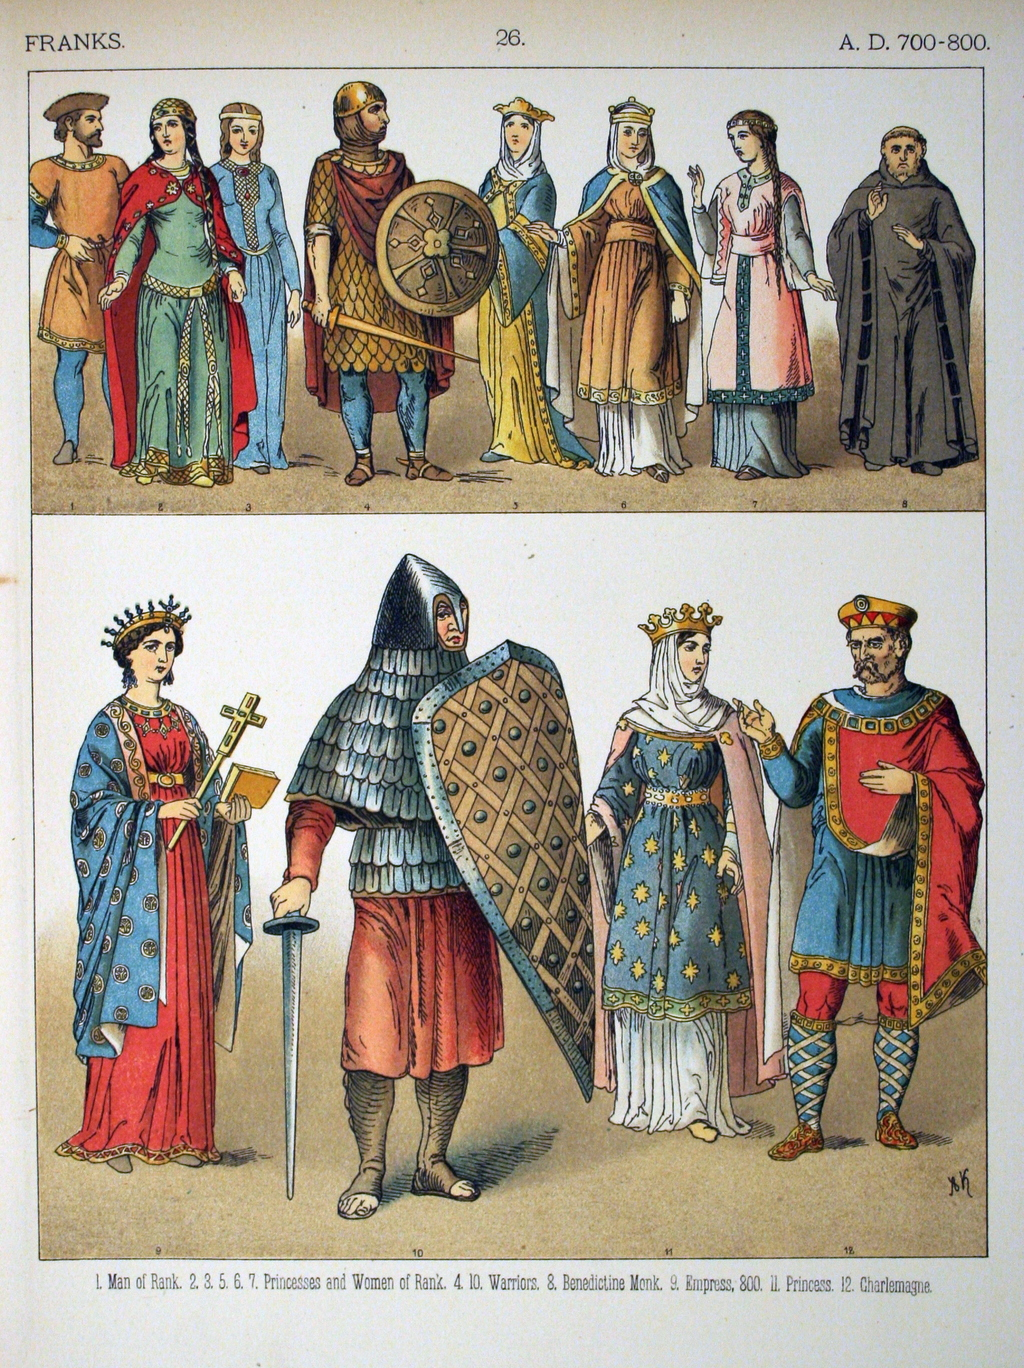 portrait de charlemagne source data abuledu org ancien  costumes de francs source data abuledu org